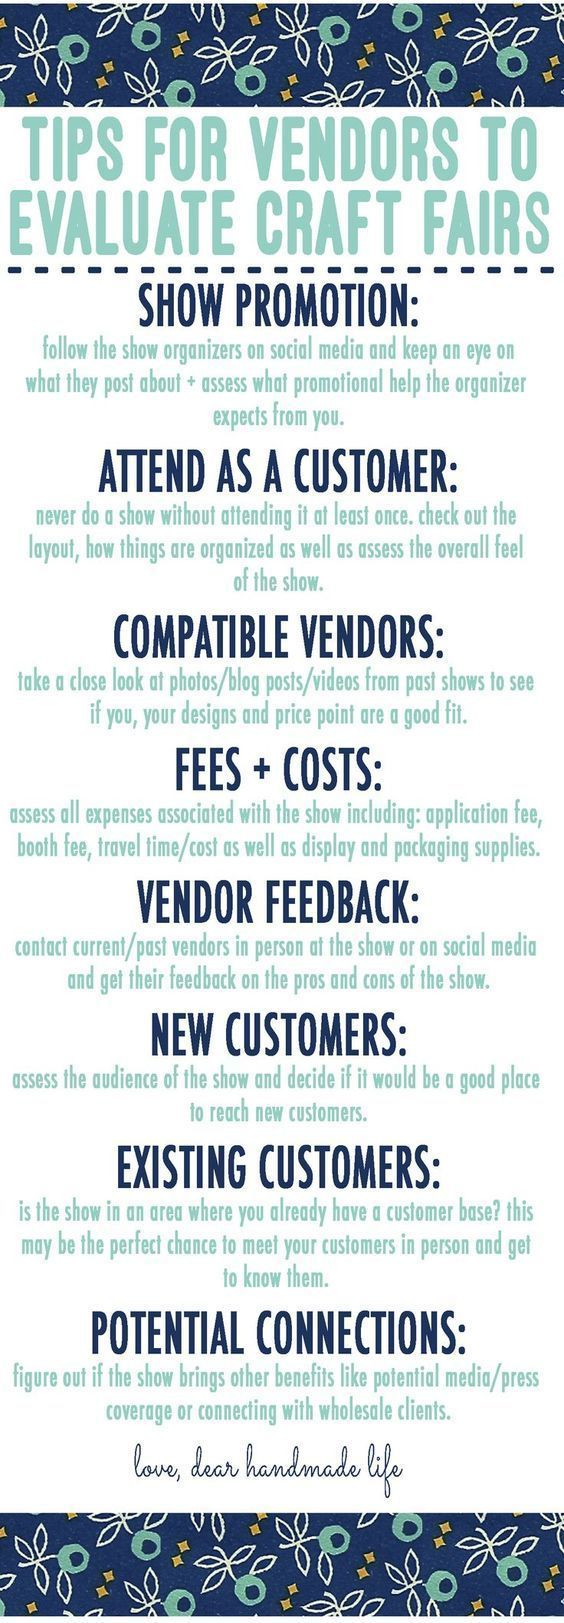 Tips For Vendors To Evaluate Craft Fairs #craftfairs